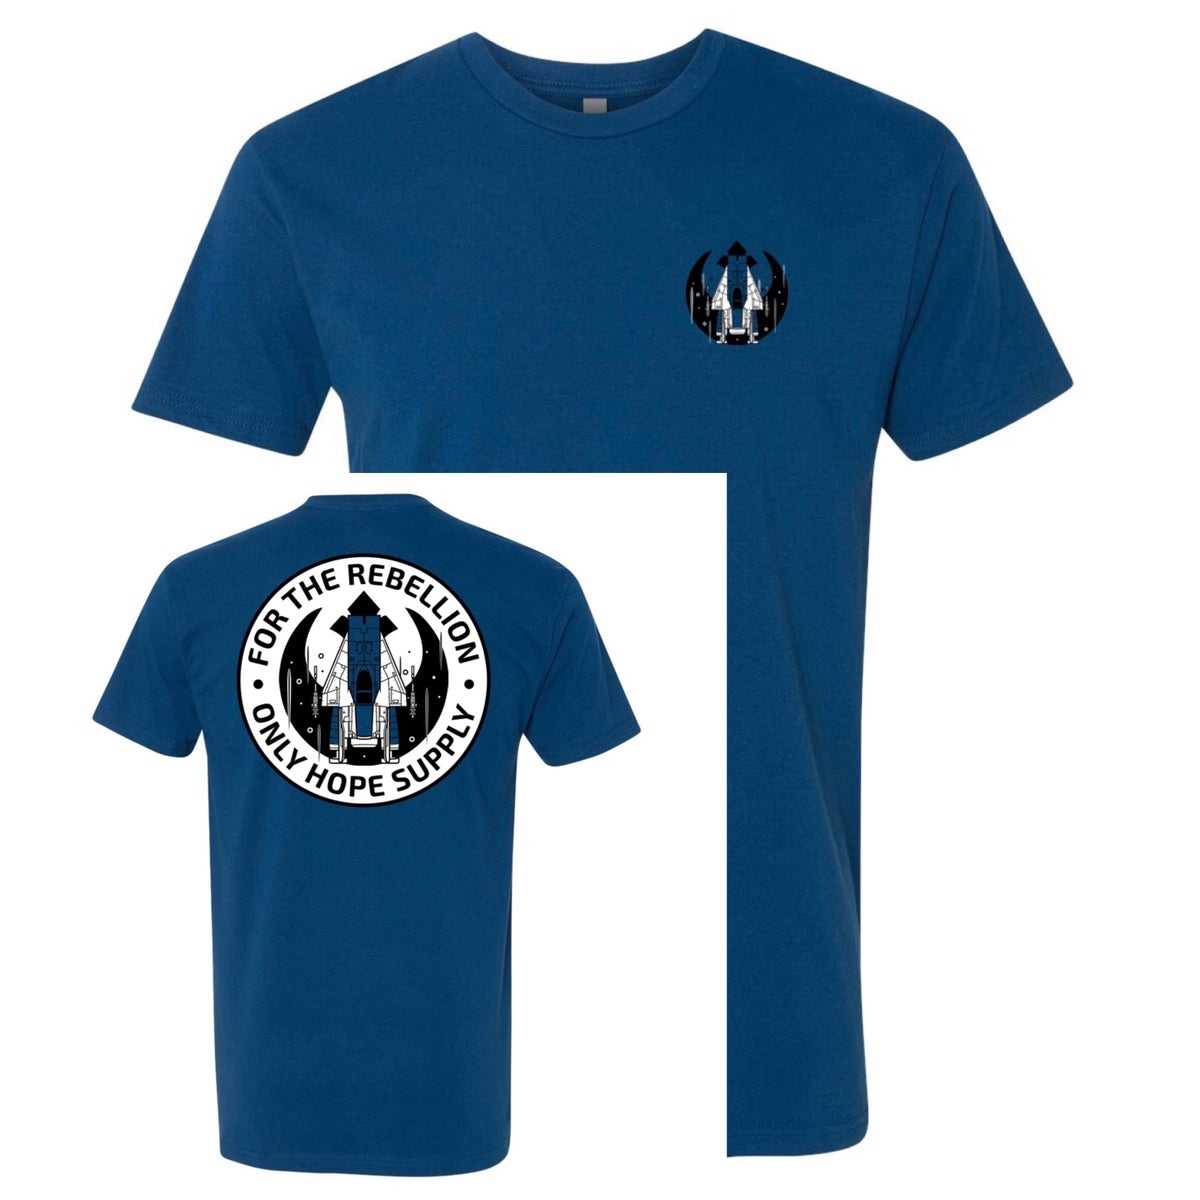 Image of 'A-Wing' Tee